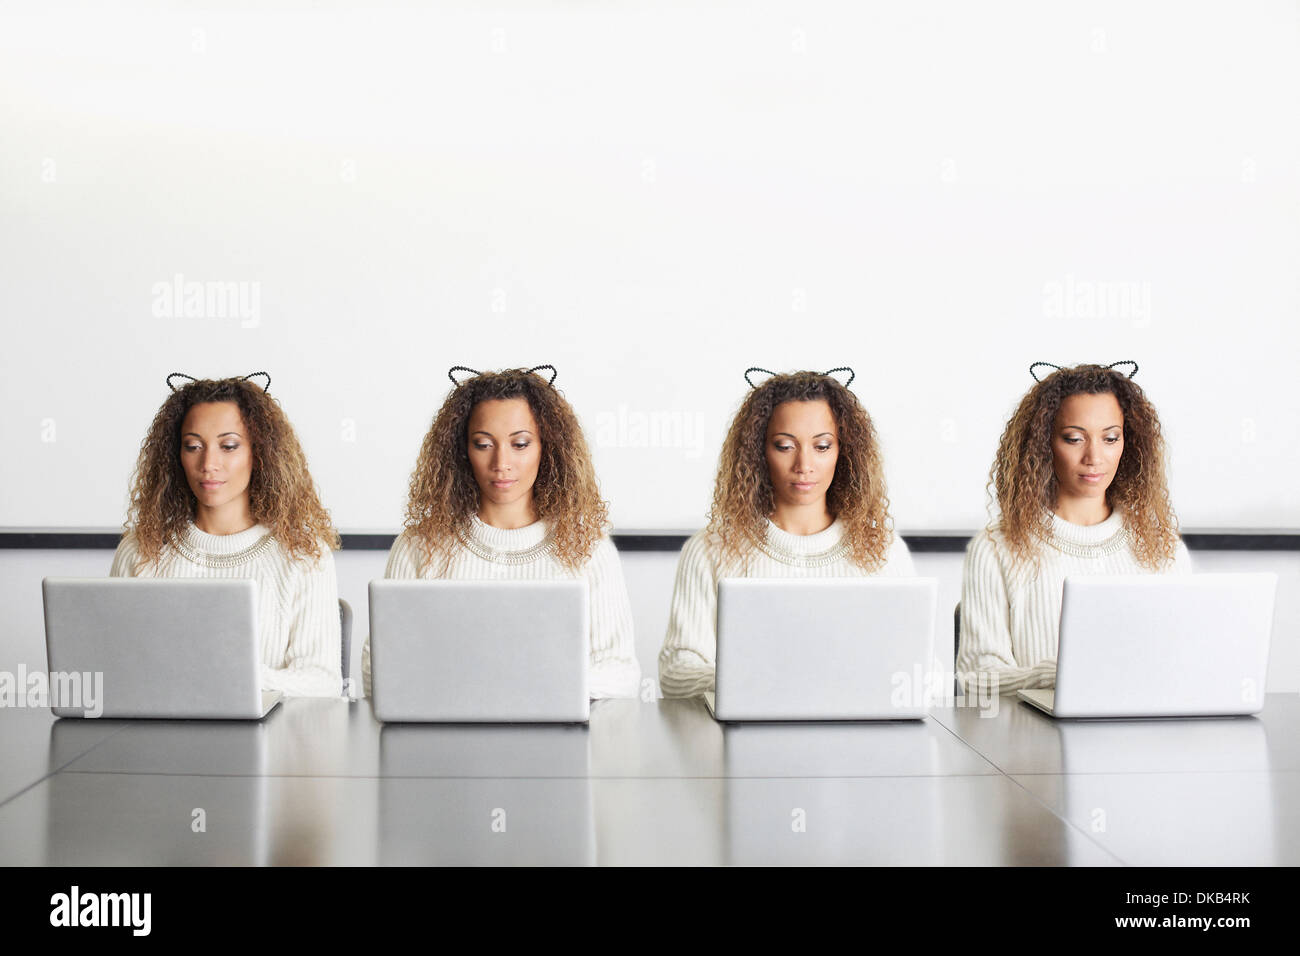 Businesswomen wearing ears using laptops - Stock Image